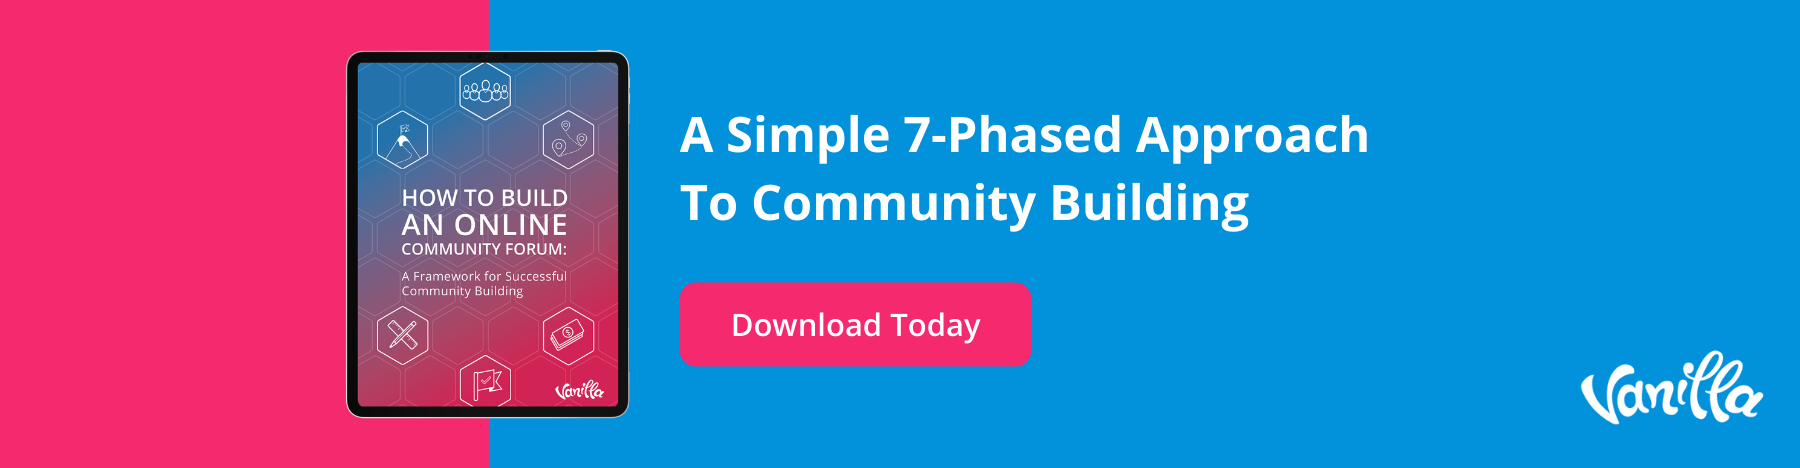 A Simple 7 Phased Approach To Community Building-1